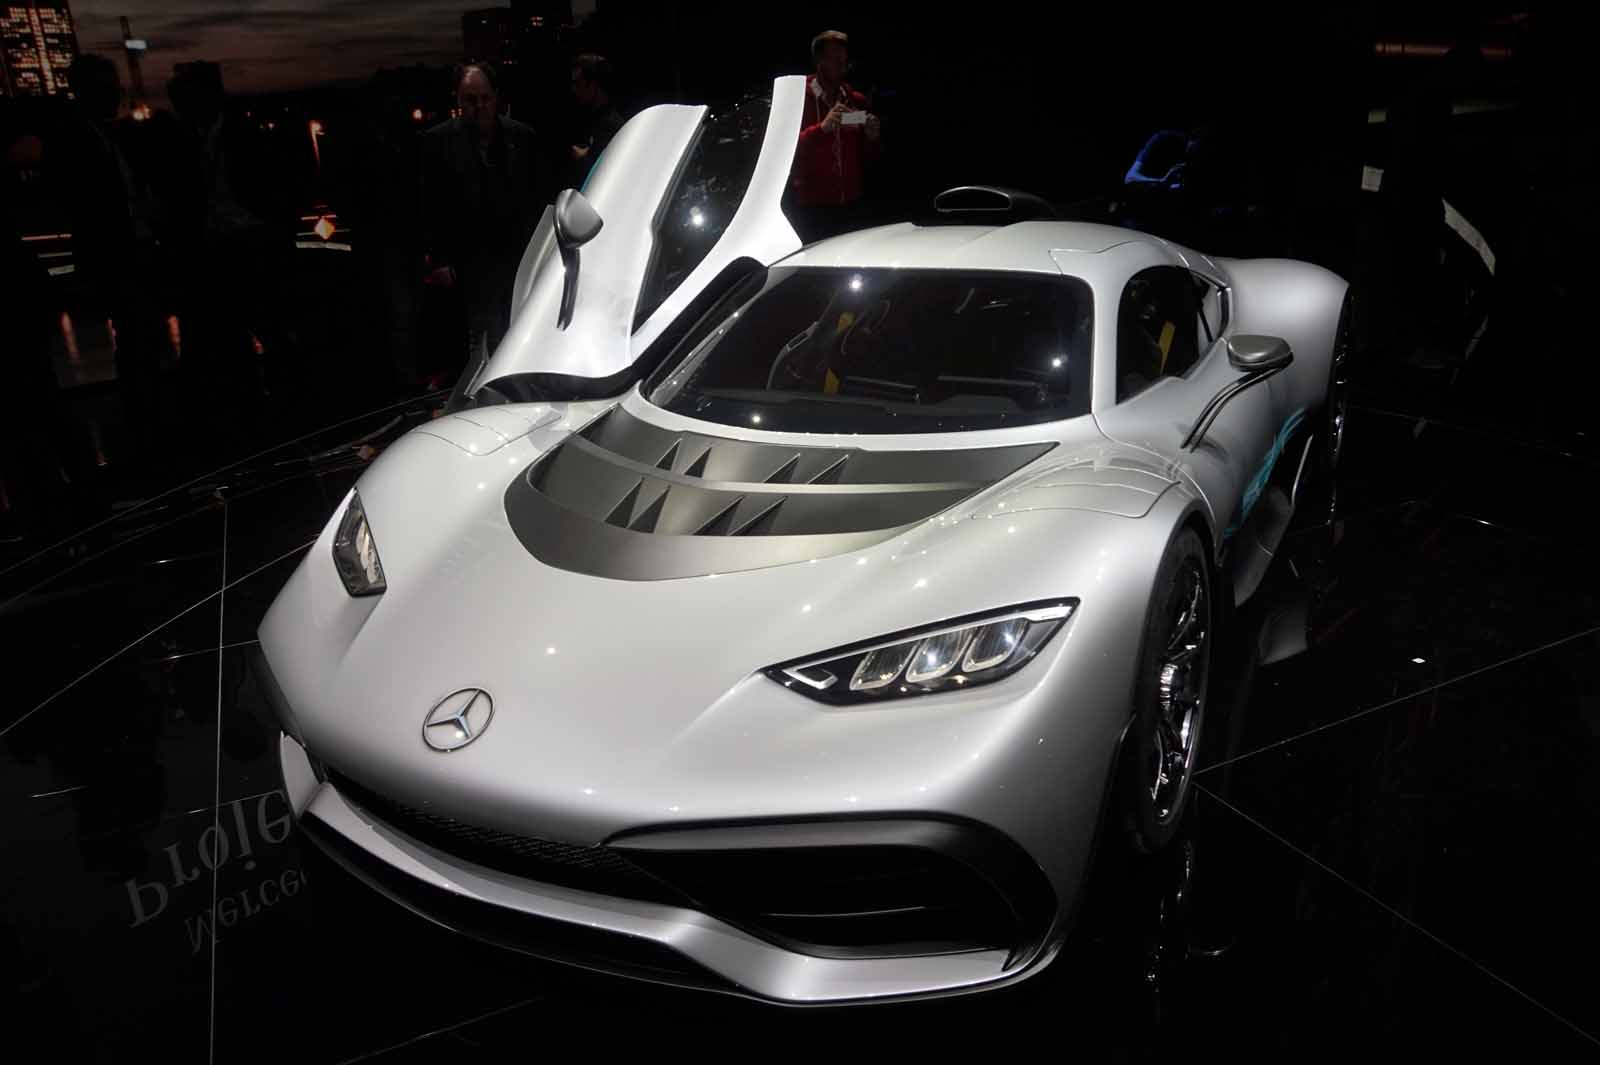 https://www.autoguide.com/blog/wp-content/gallery/mercedes-amg-project-one-live-and-official-photos/Mercedes-AMG-Project-One-24.jpg